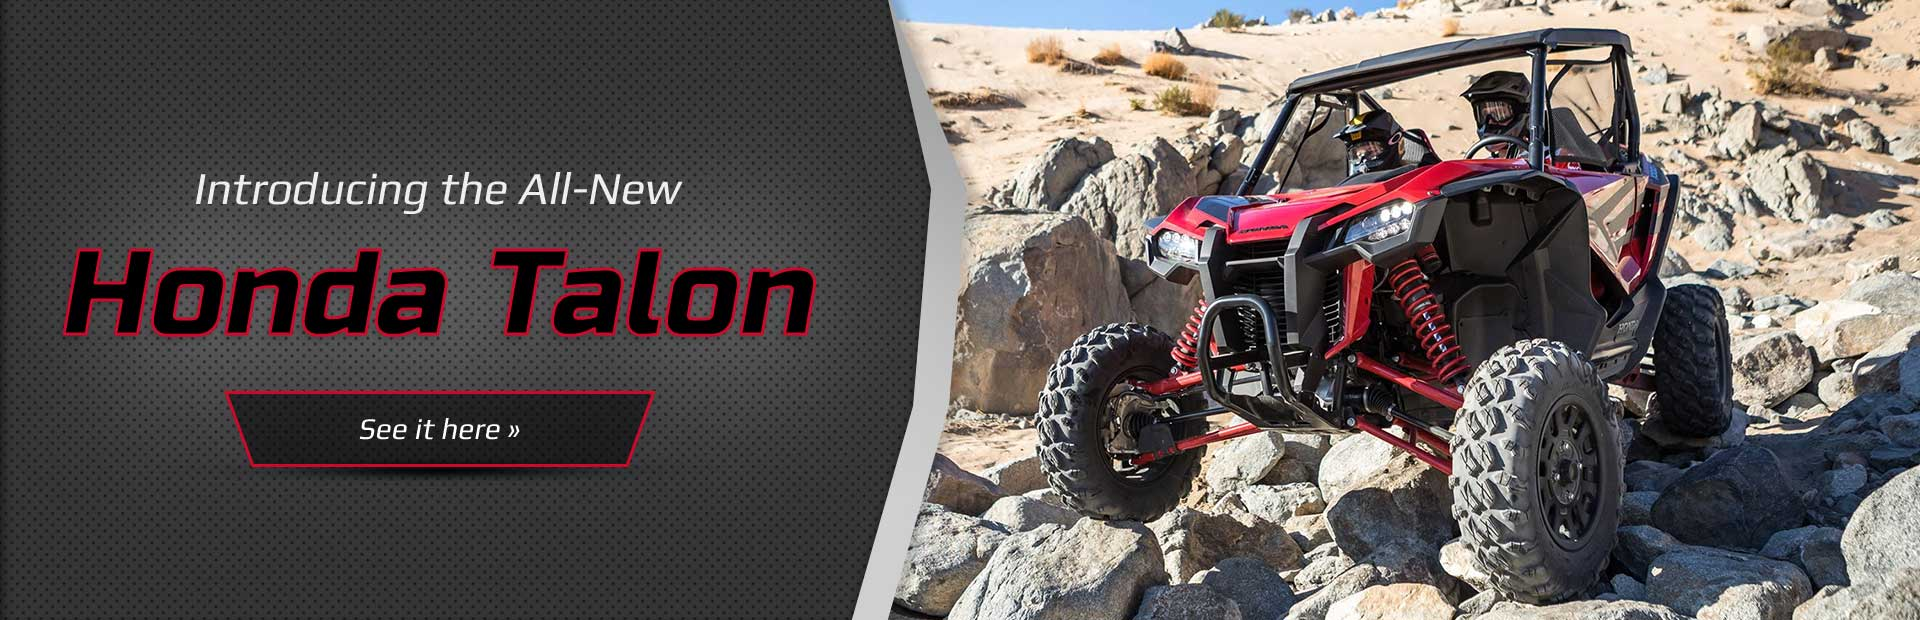 Introducing the All-New Honda Talon: Contact us for details.